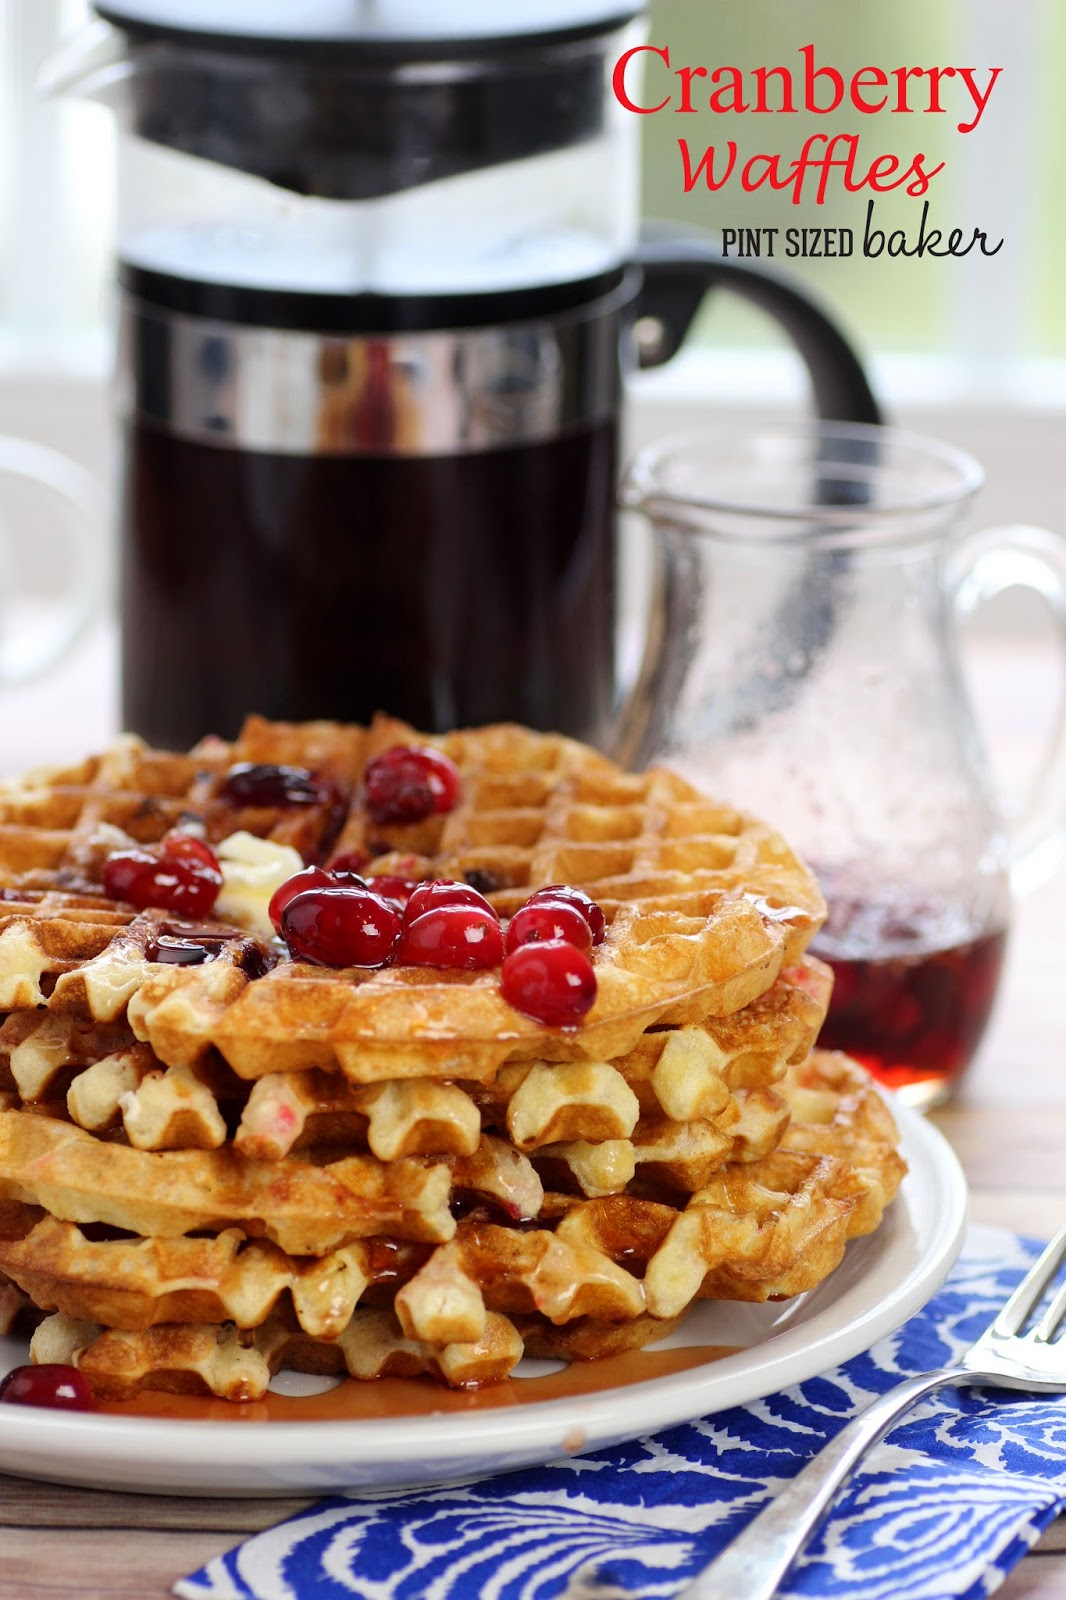 Sweet and Tart Cranberry Waffles are a seasonal favorite. Make up a big batch!